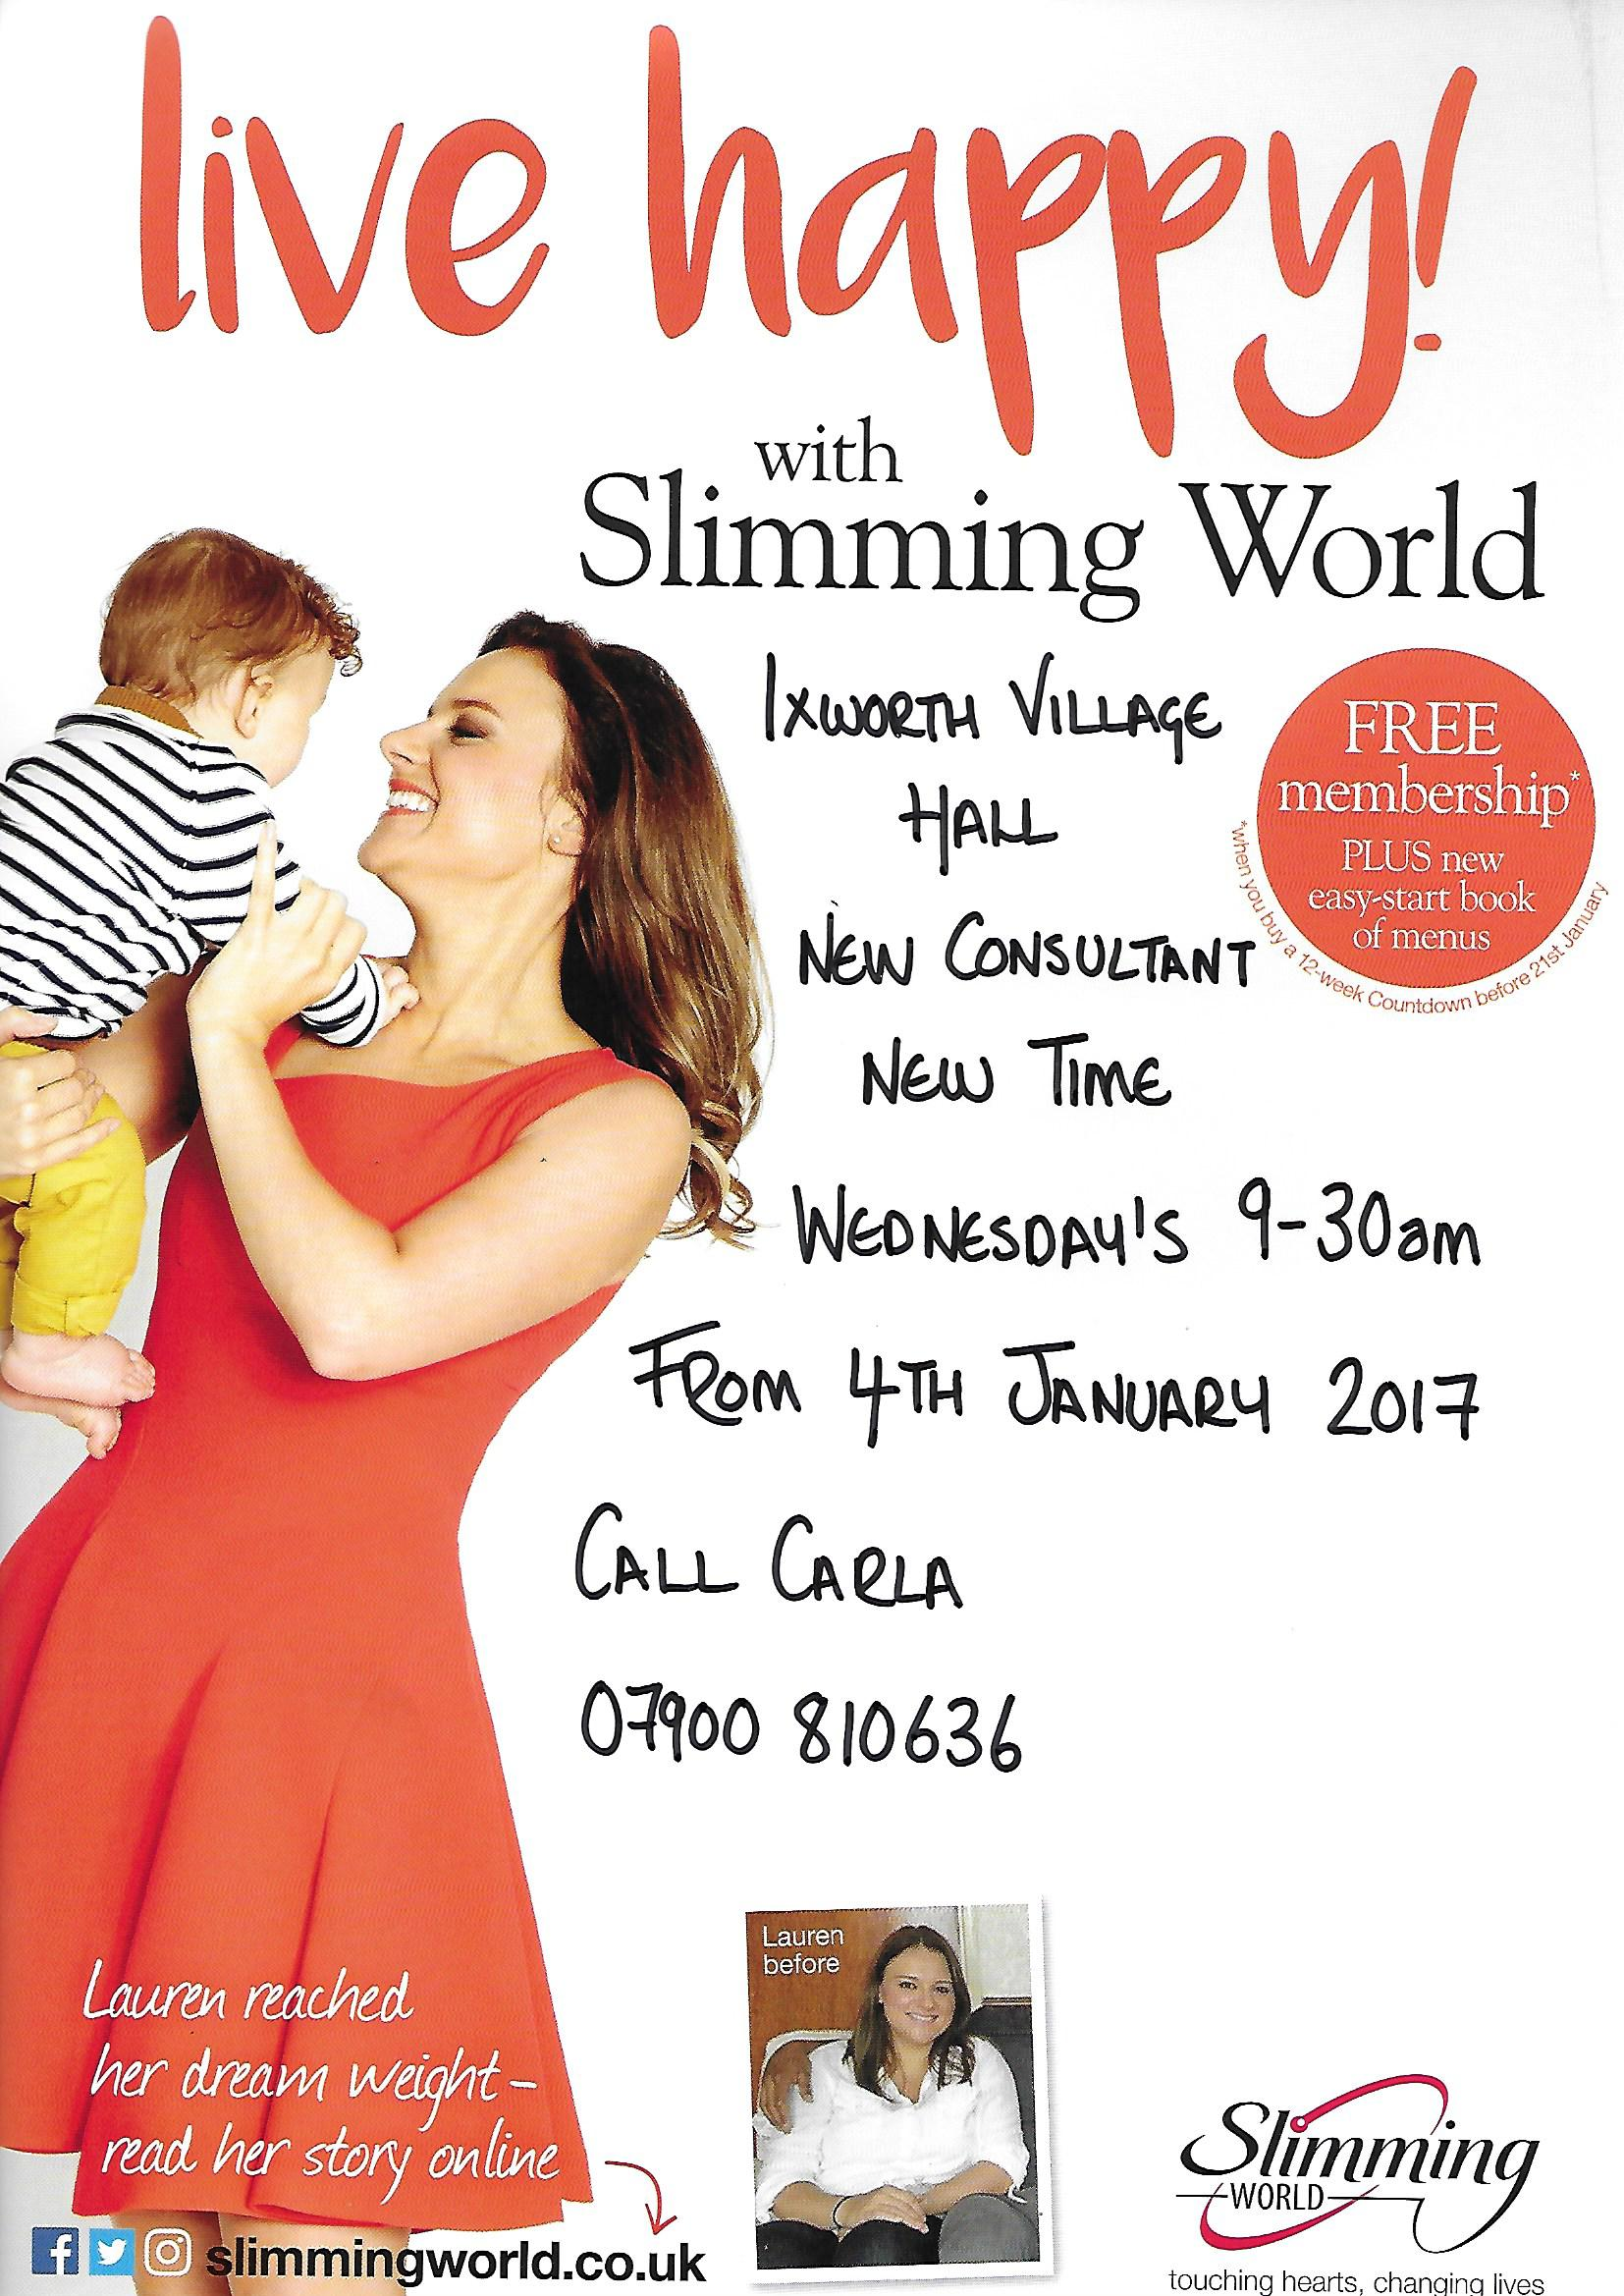 Slimming world ixworth village hall Slimming world slimming world